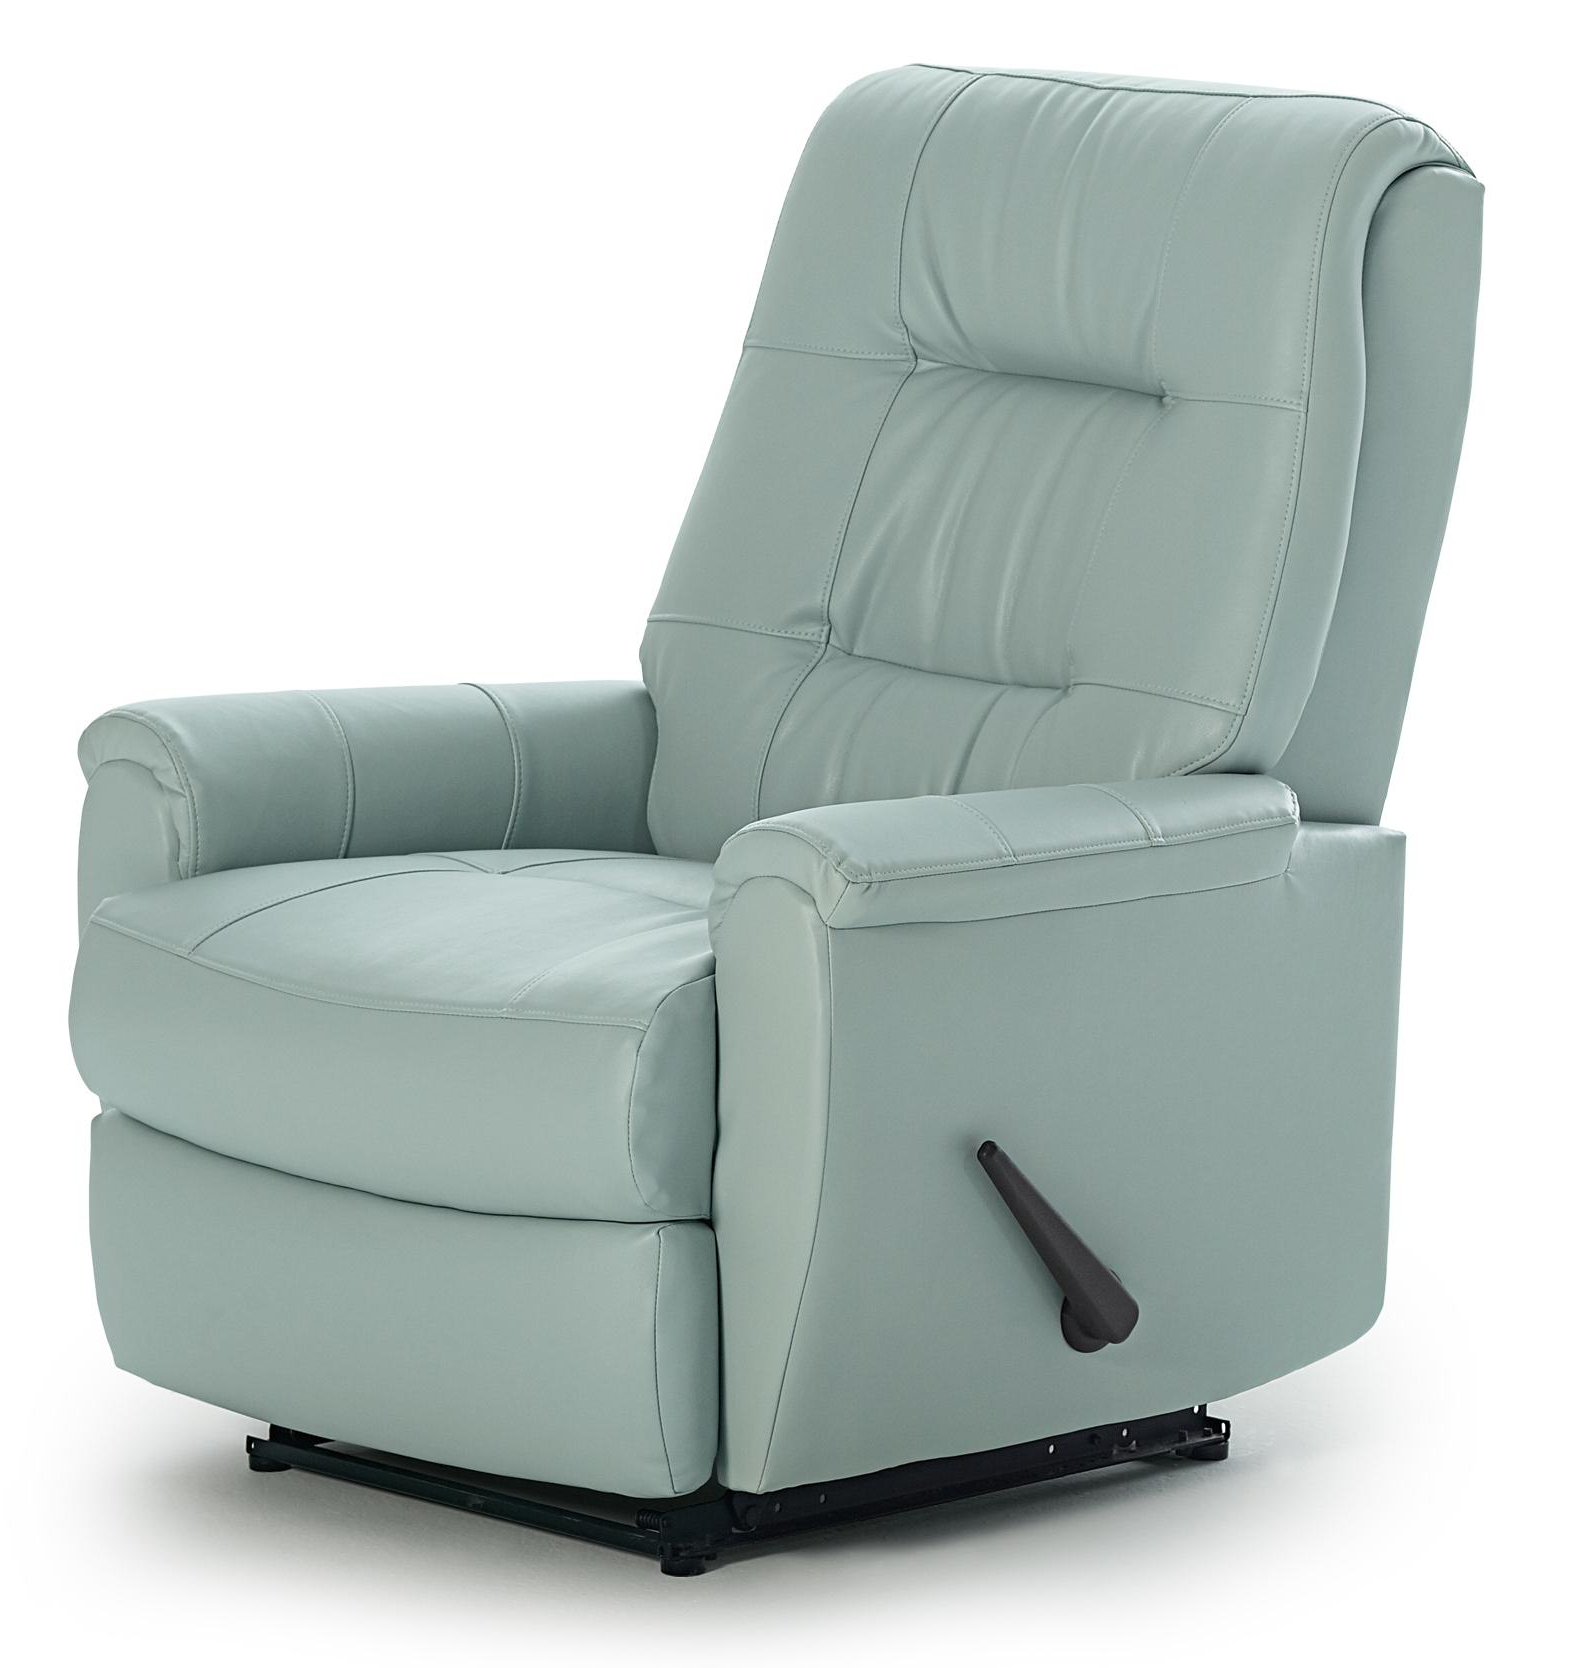 Widely Used Leather Swivel Rocker Recliner And Its Benefits (View 14 of 20)